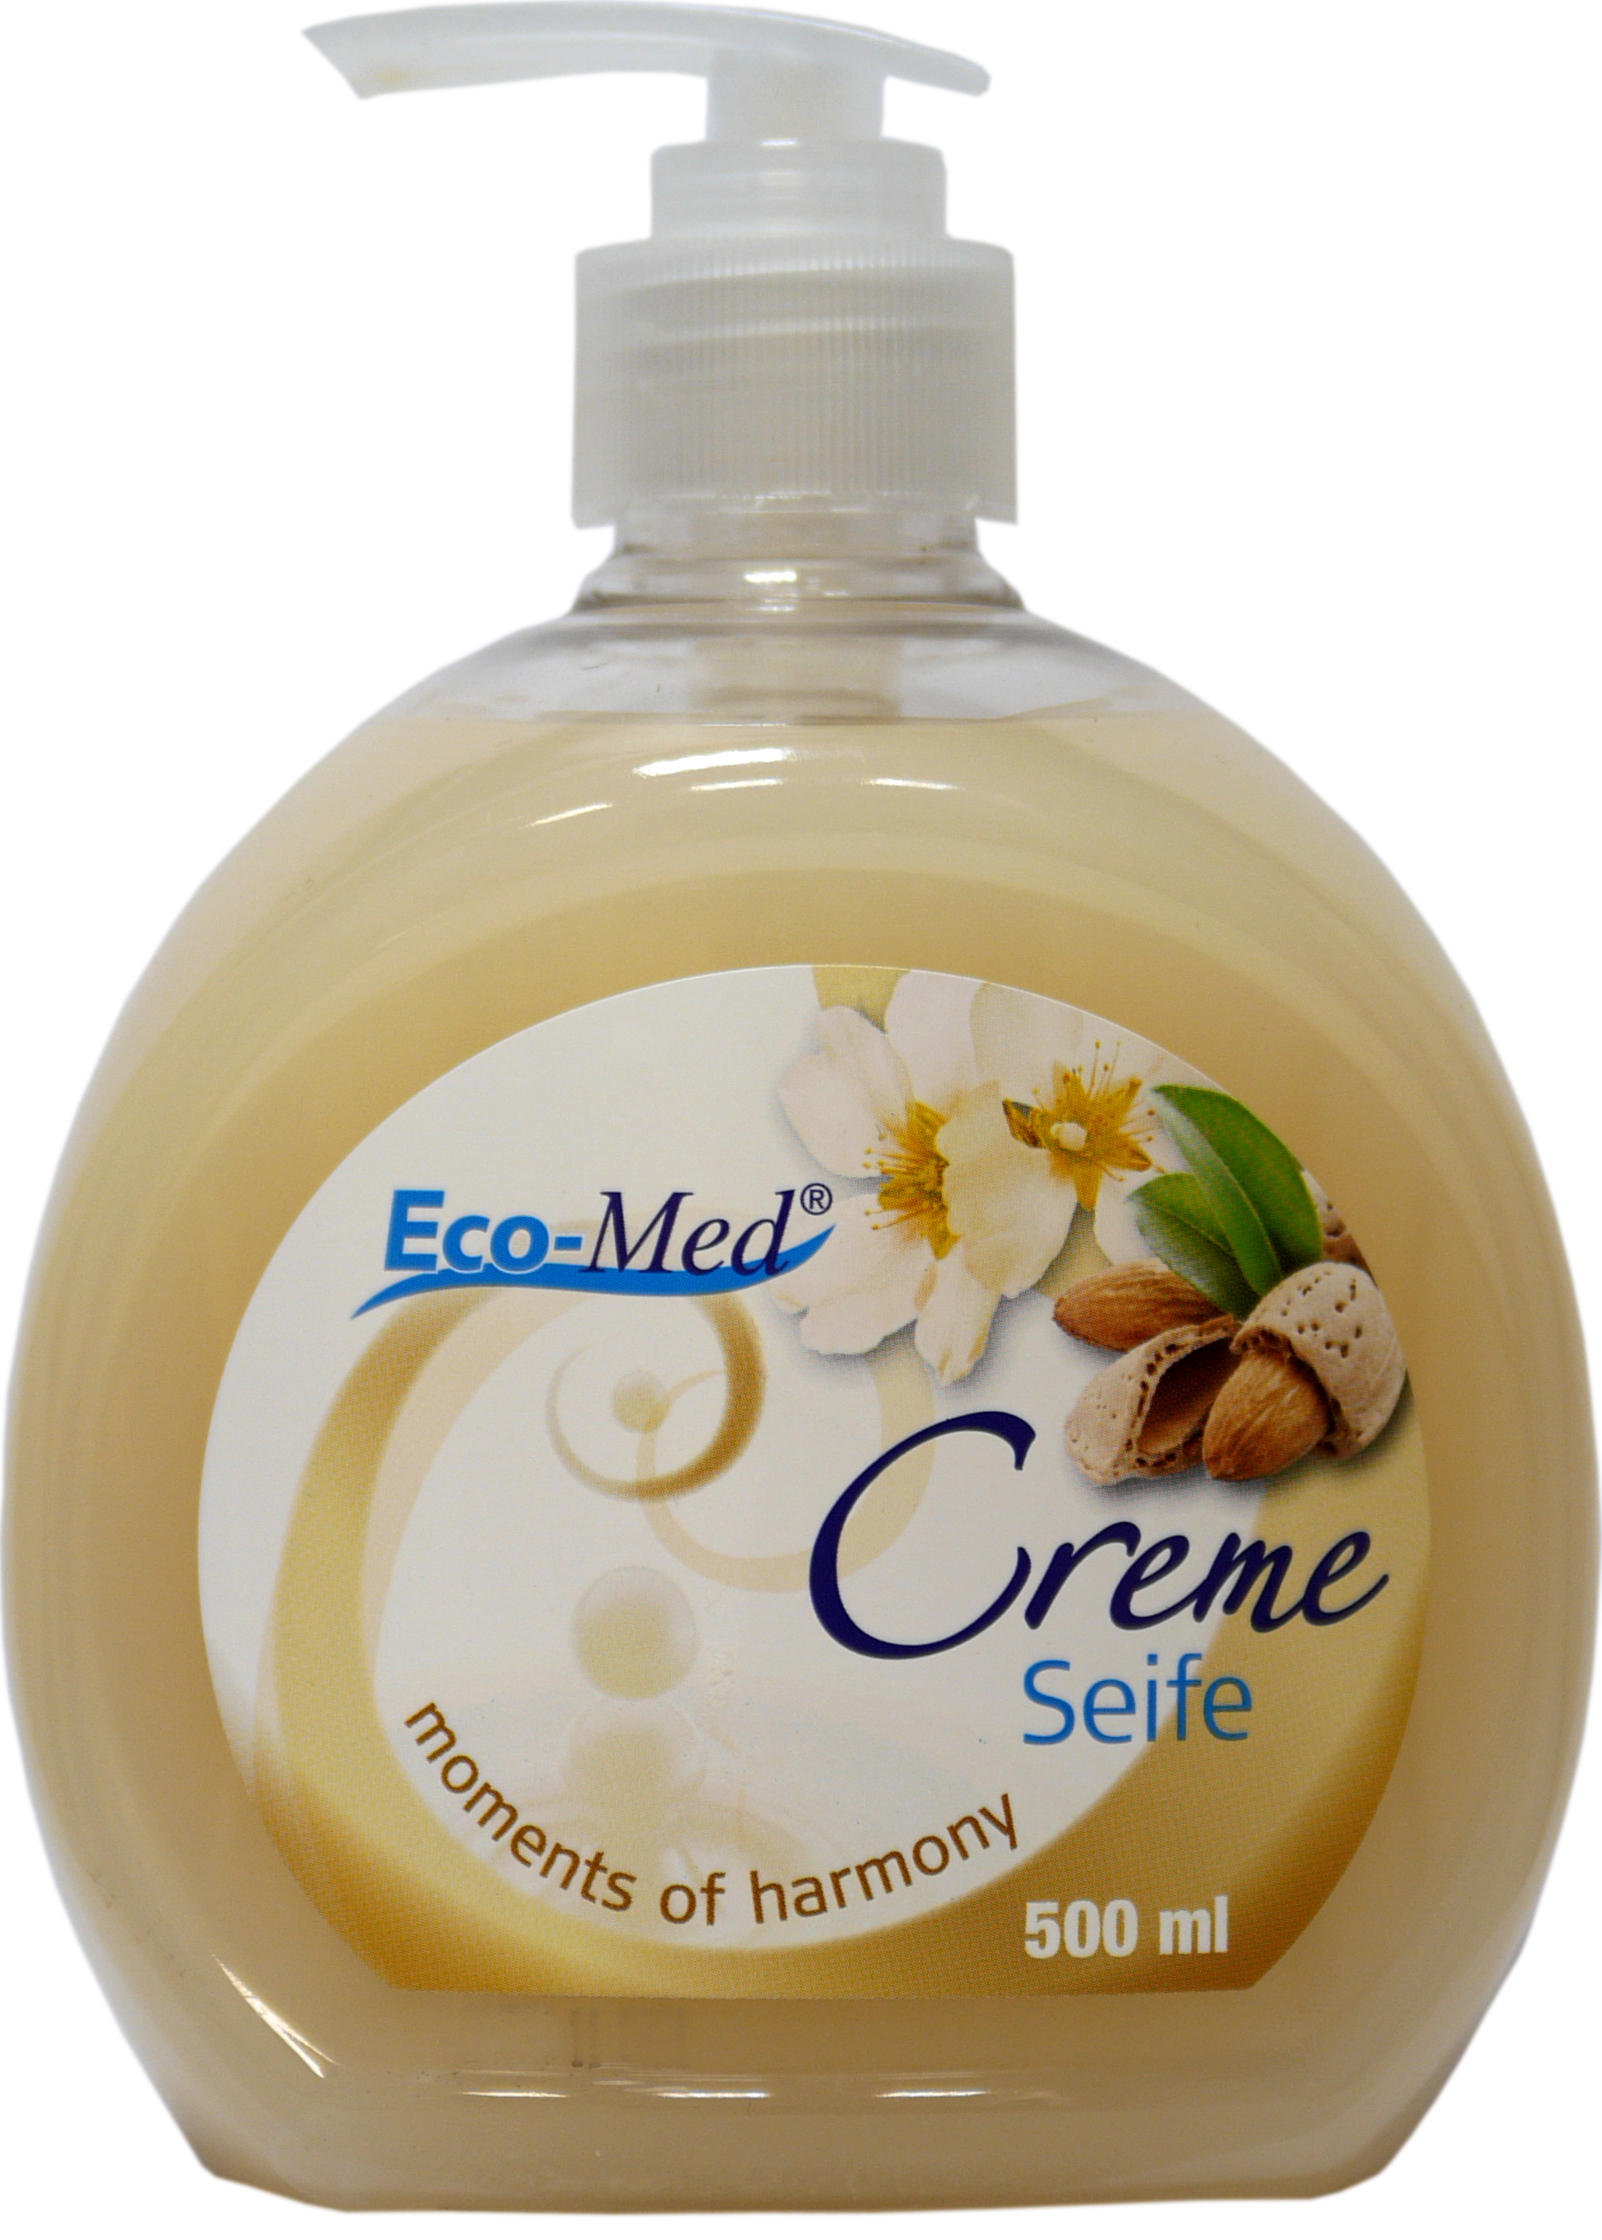 01601 - creamsoap moments of harmony 500 ml